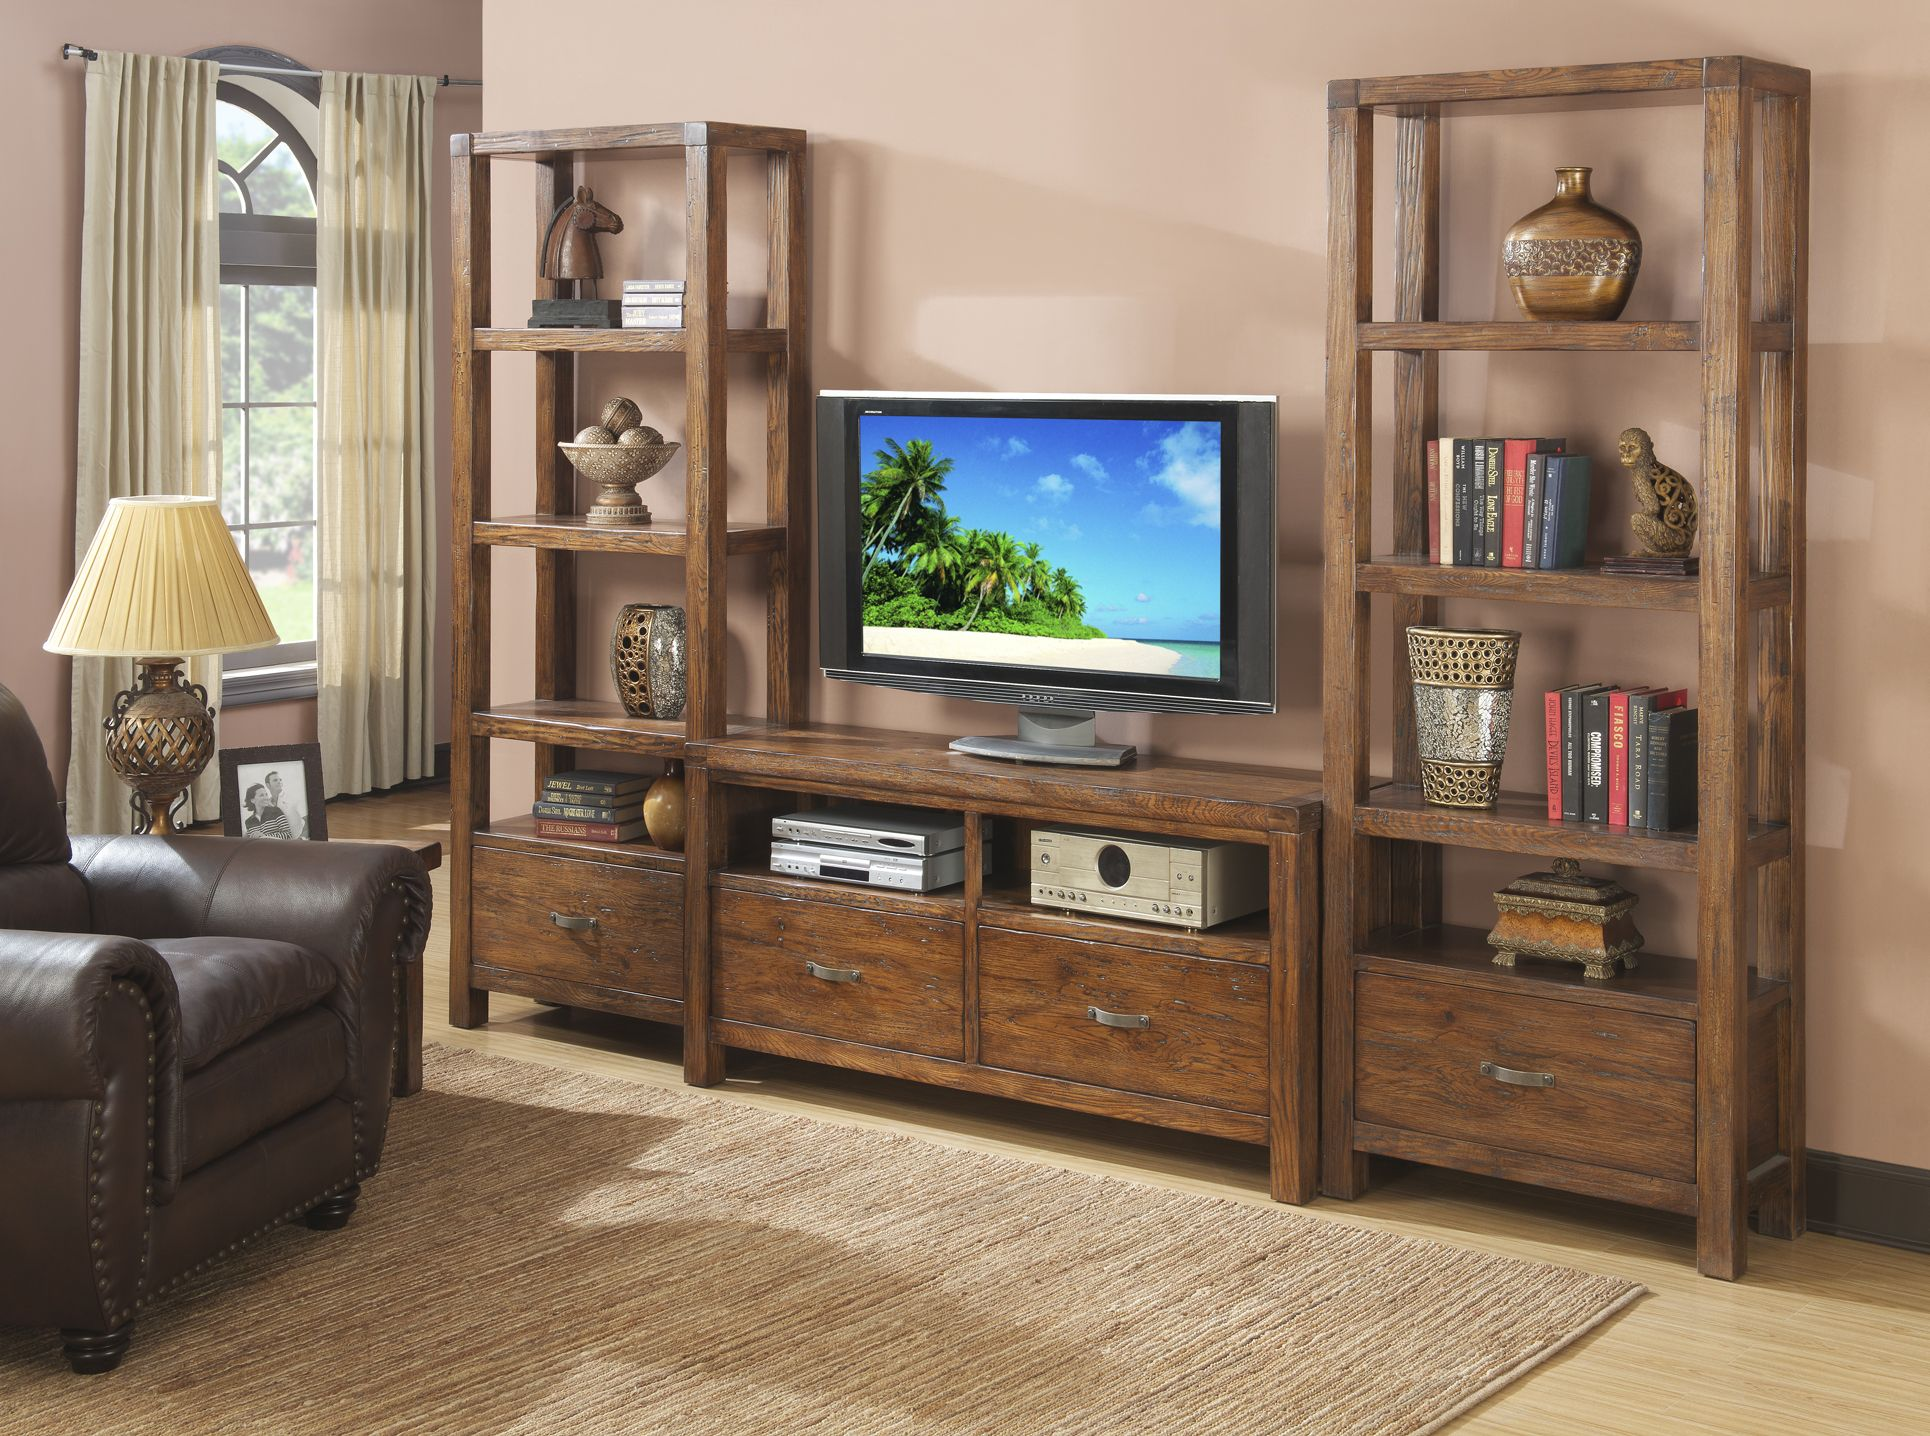 This entertainment unit is beautifully weathered yet built to last